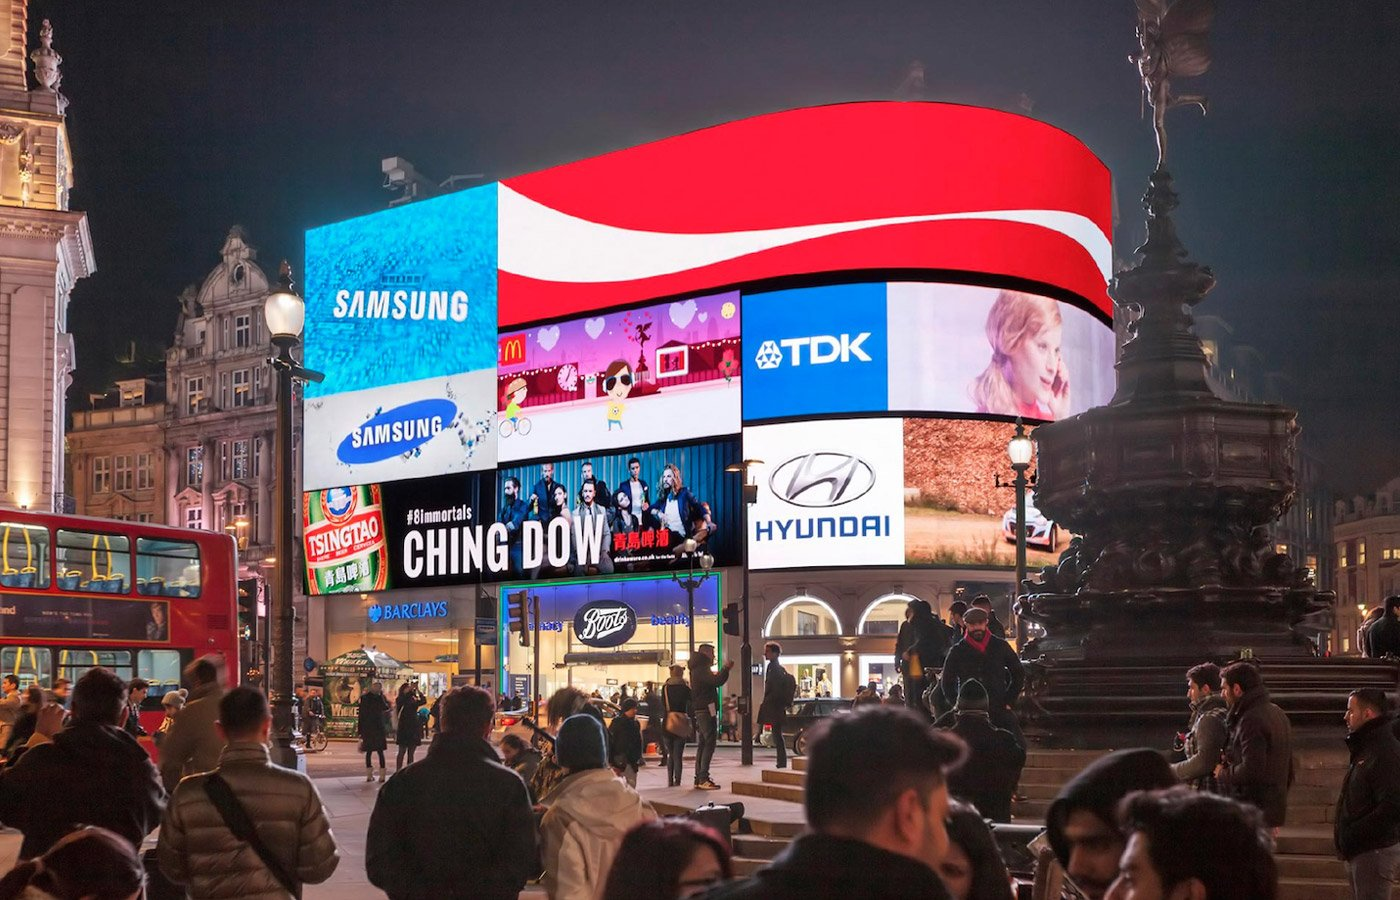 The ad in Piccadilly Circus